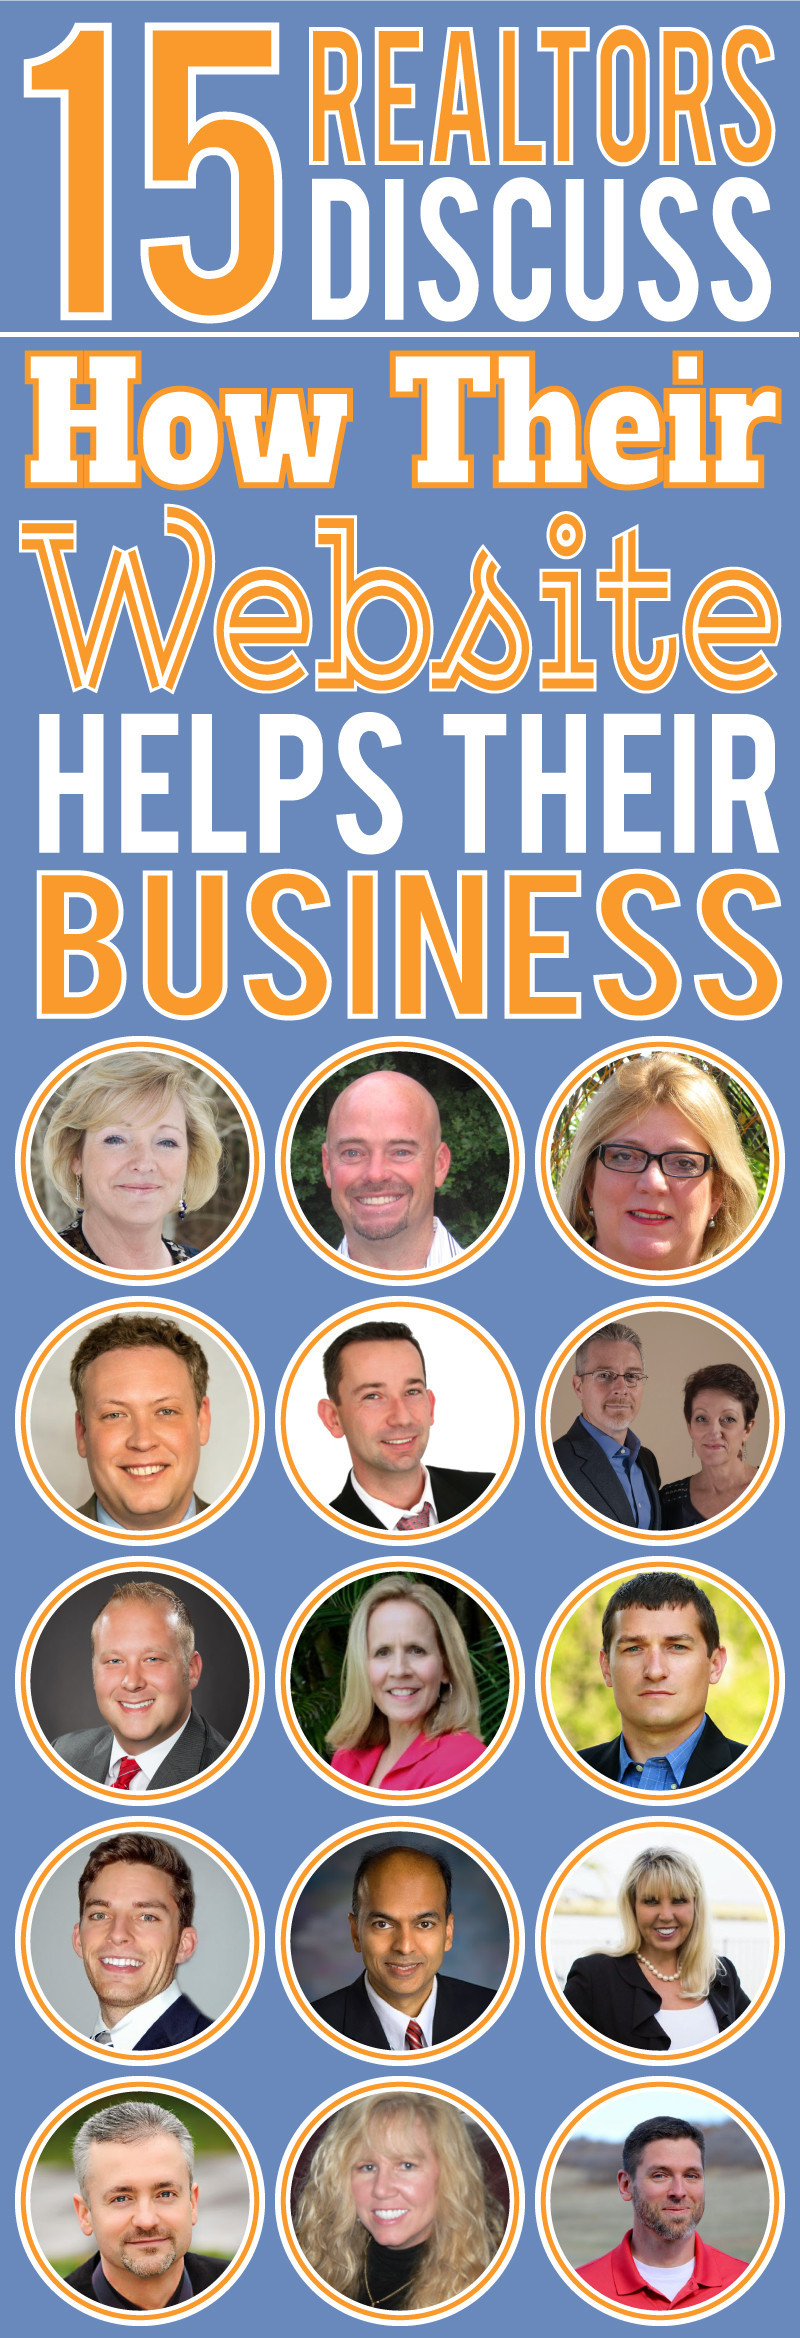 15 Realtors Discuss How Their Website Helps Their Business